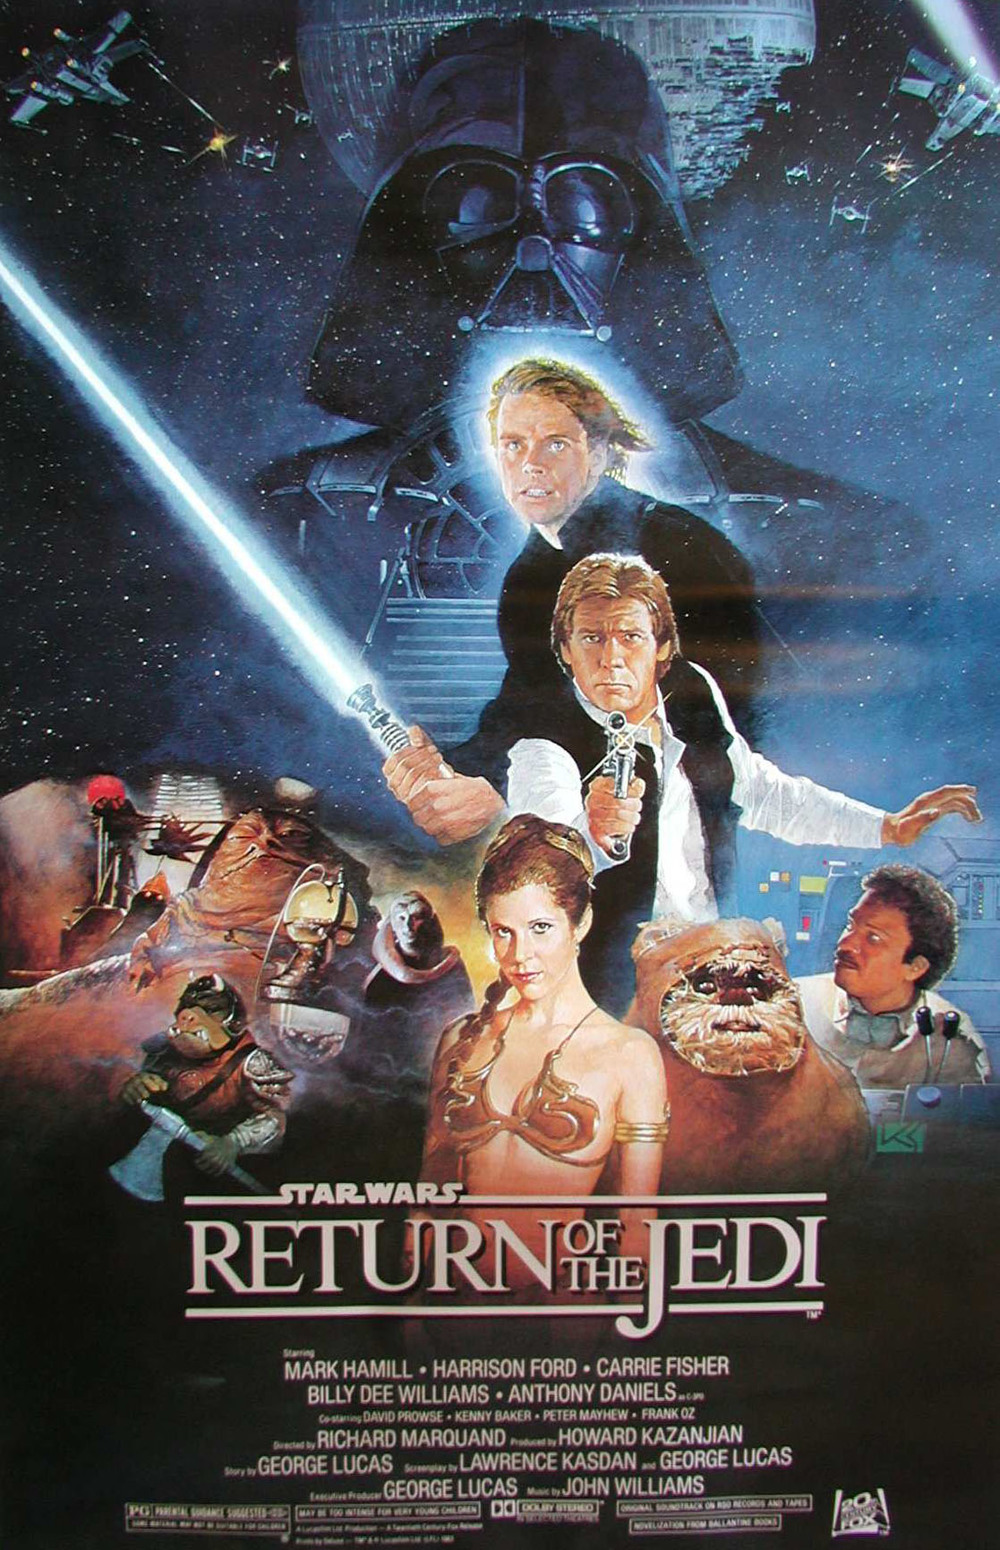 Star Wars Episode VI Return of the Jedi (1983)